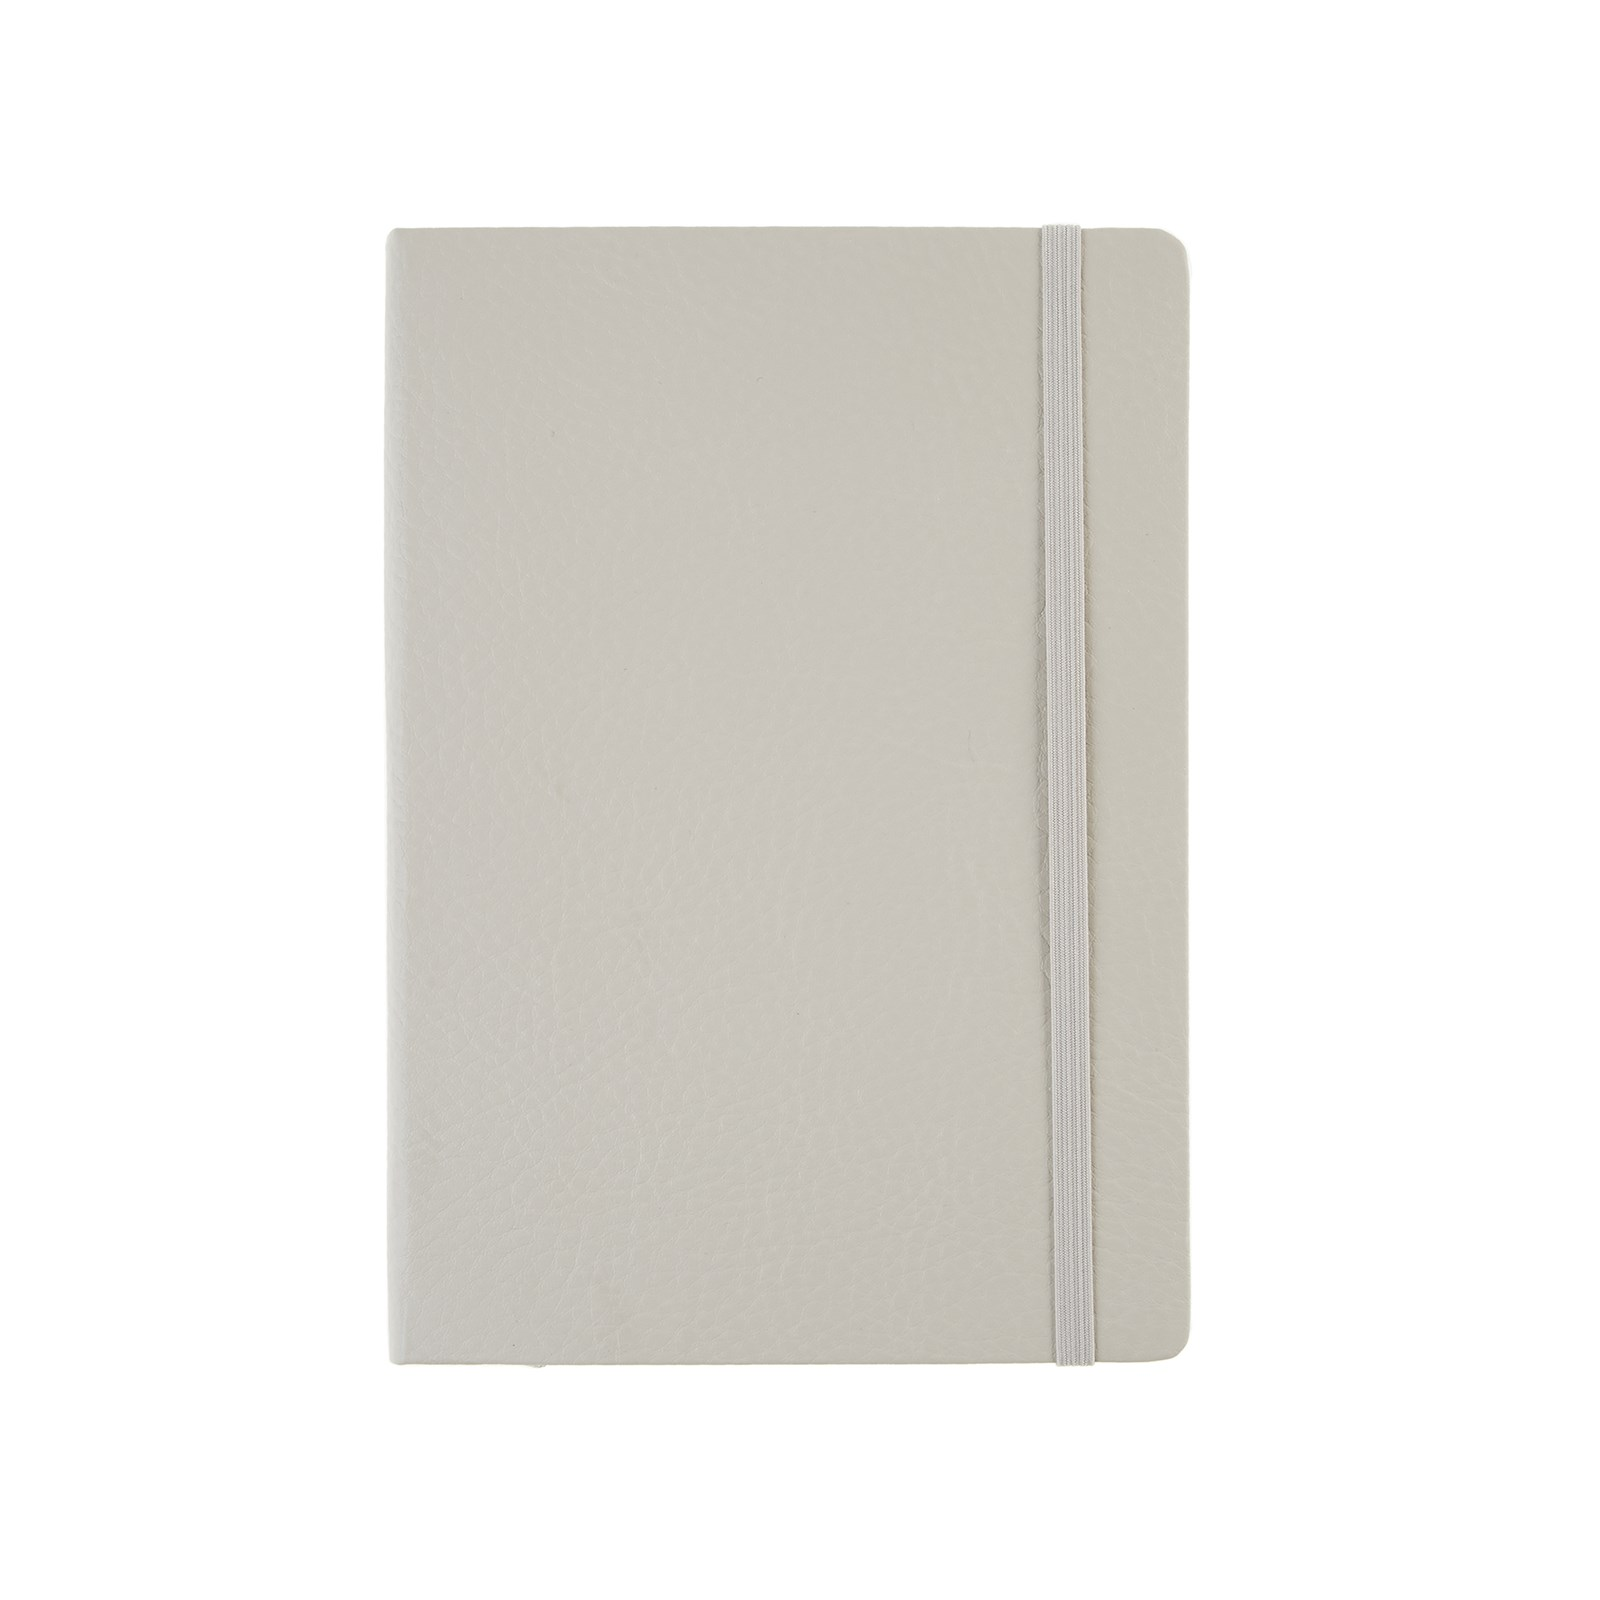 Collins B6 Ruled Notebook - Grey